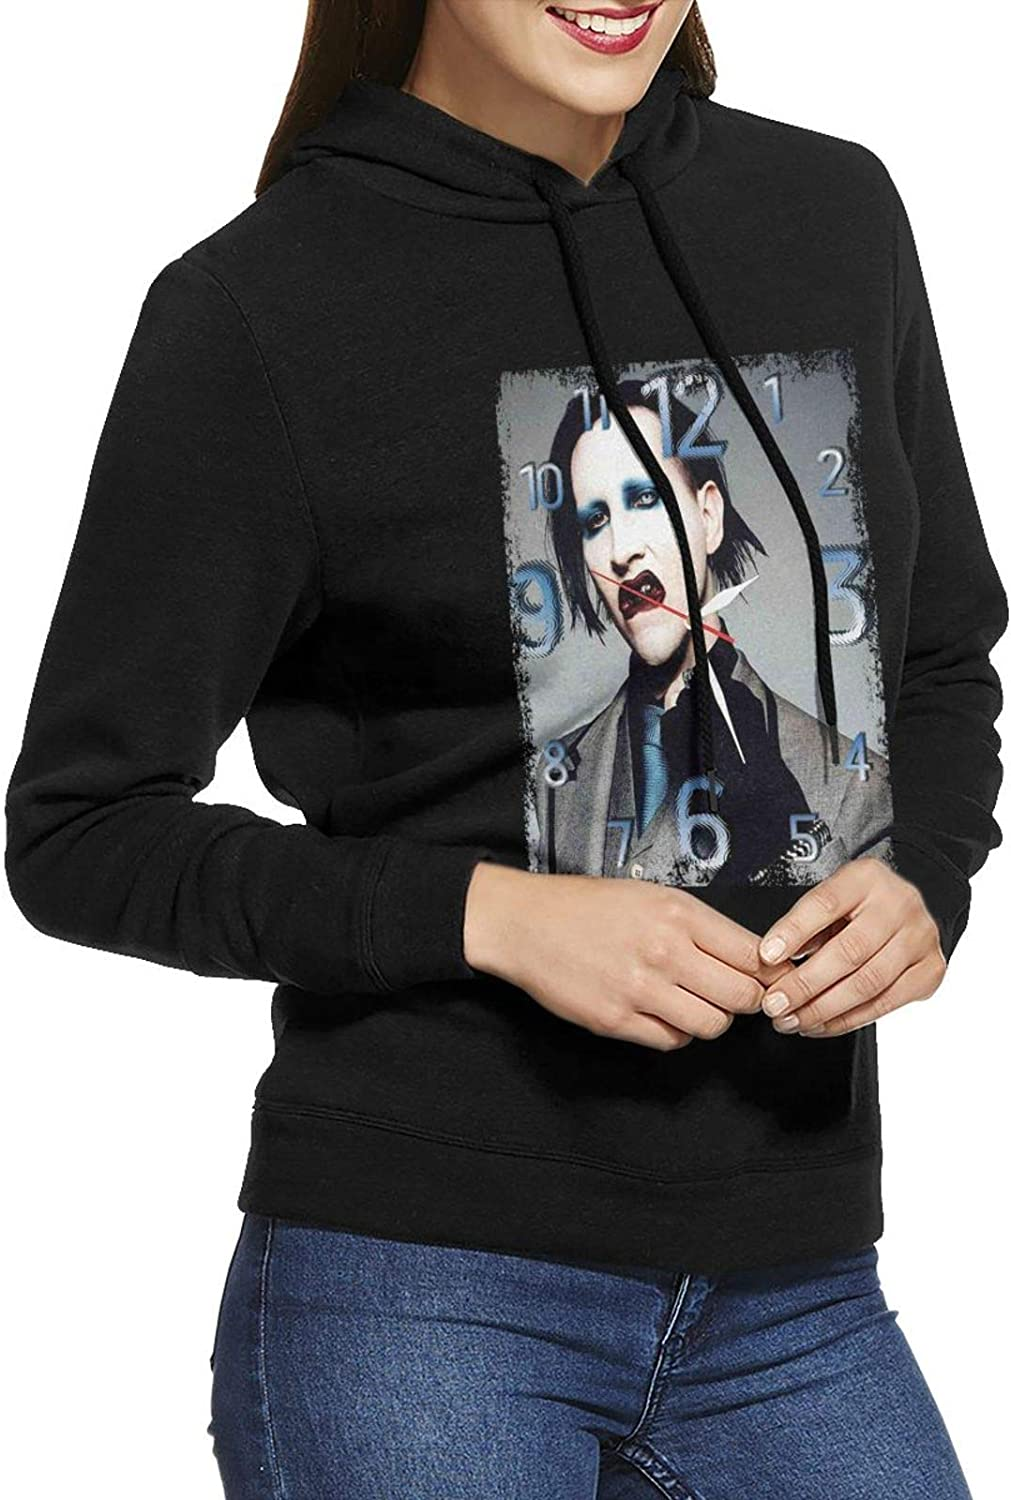 Marilyn Manson Wall Clock Hoodie Cotto Cheap super special price Max 60% OFF Womens Casual Sweatshirts